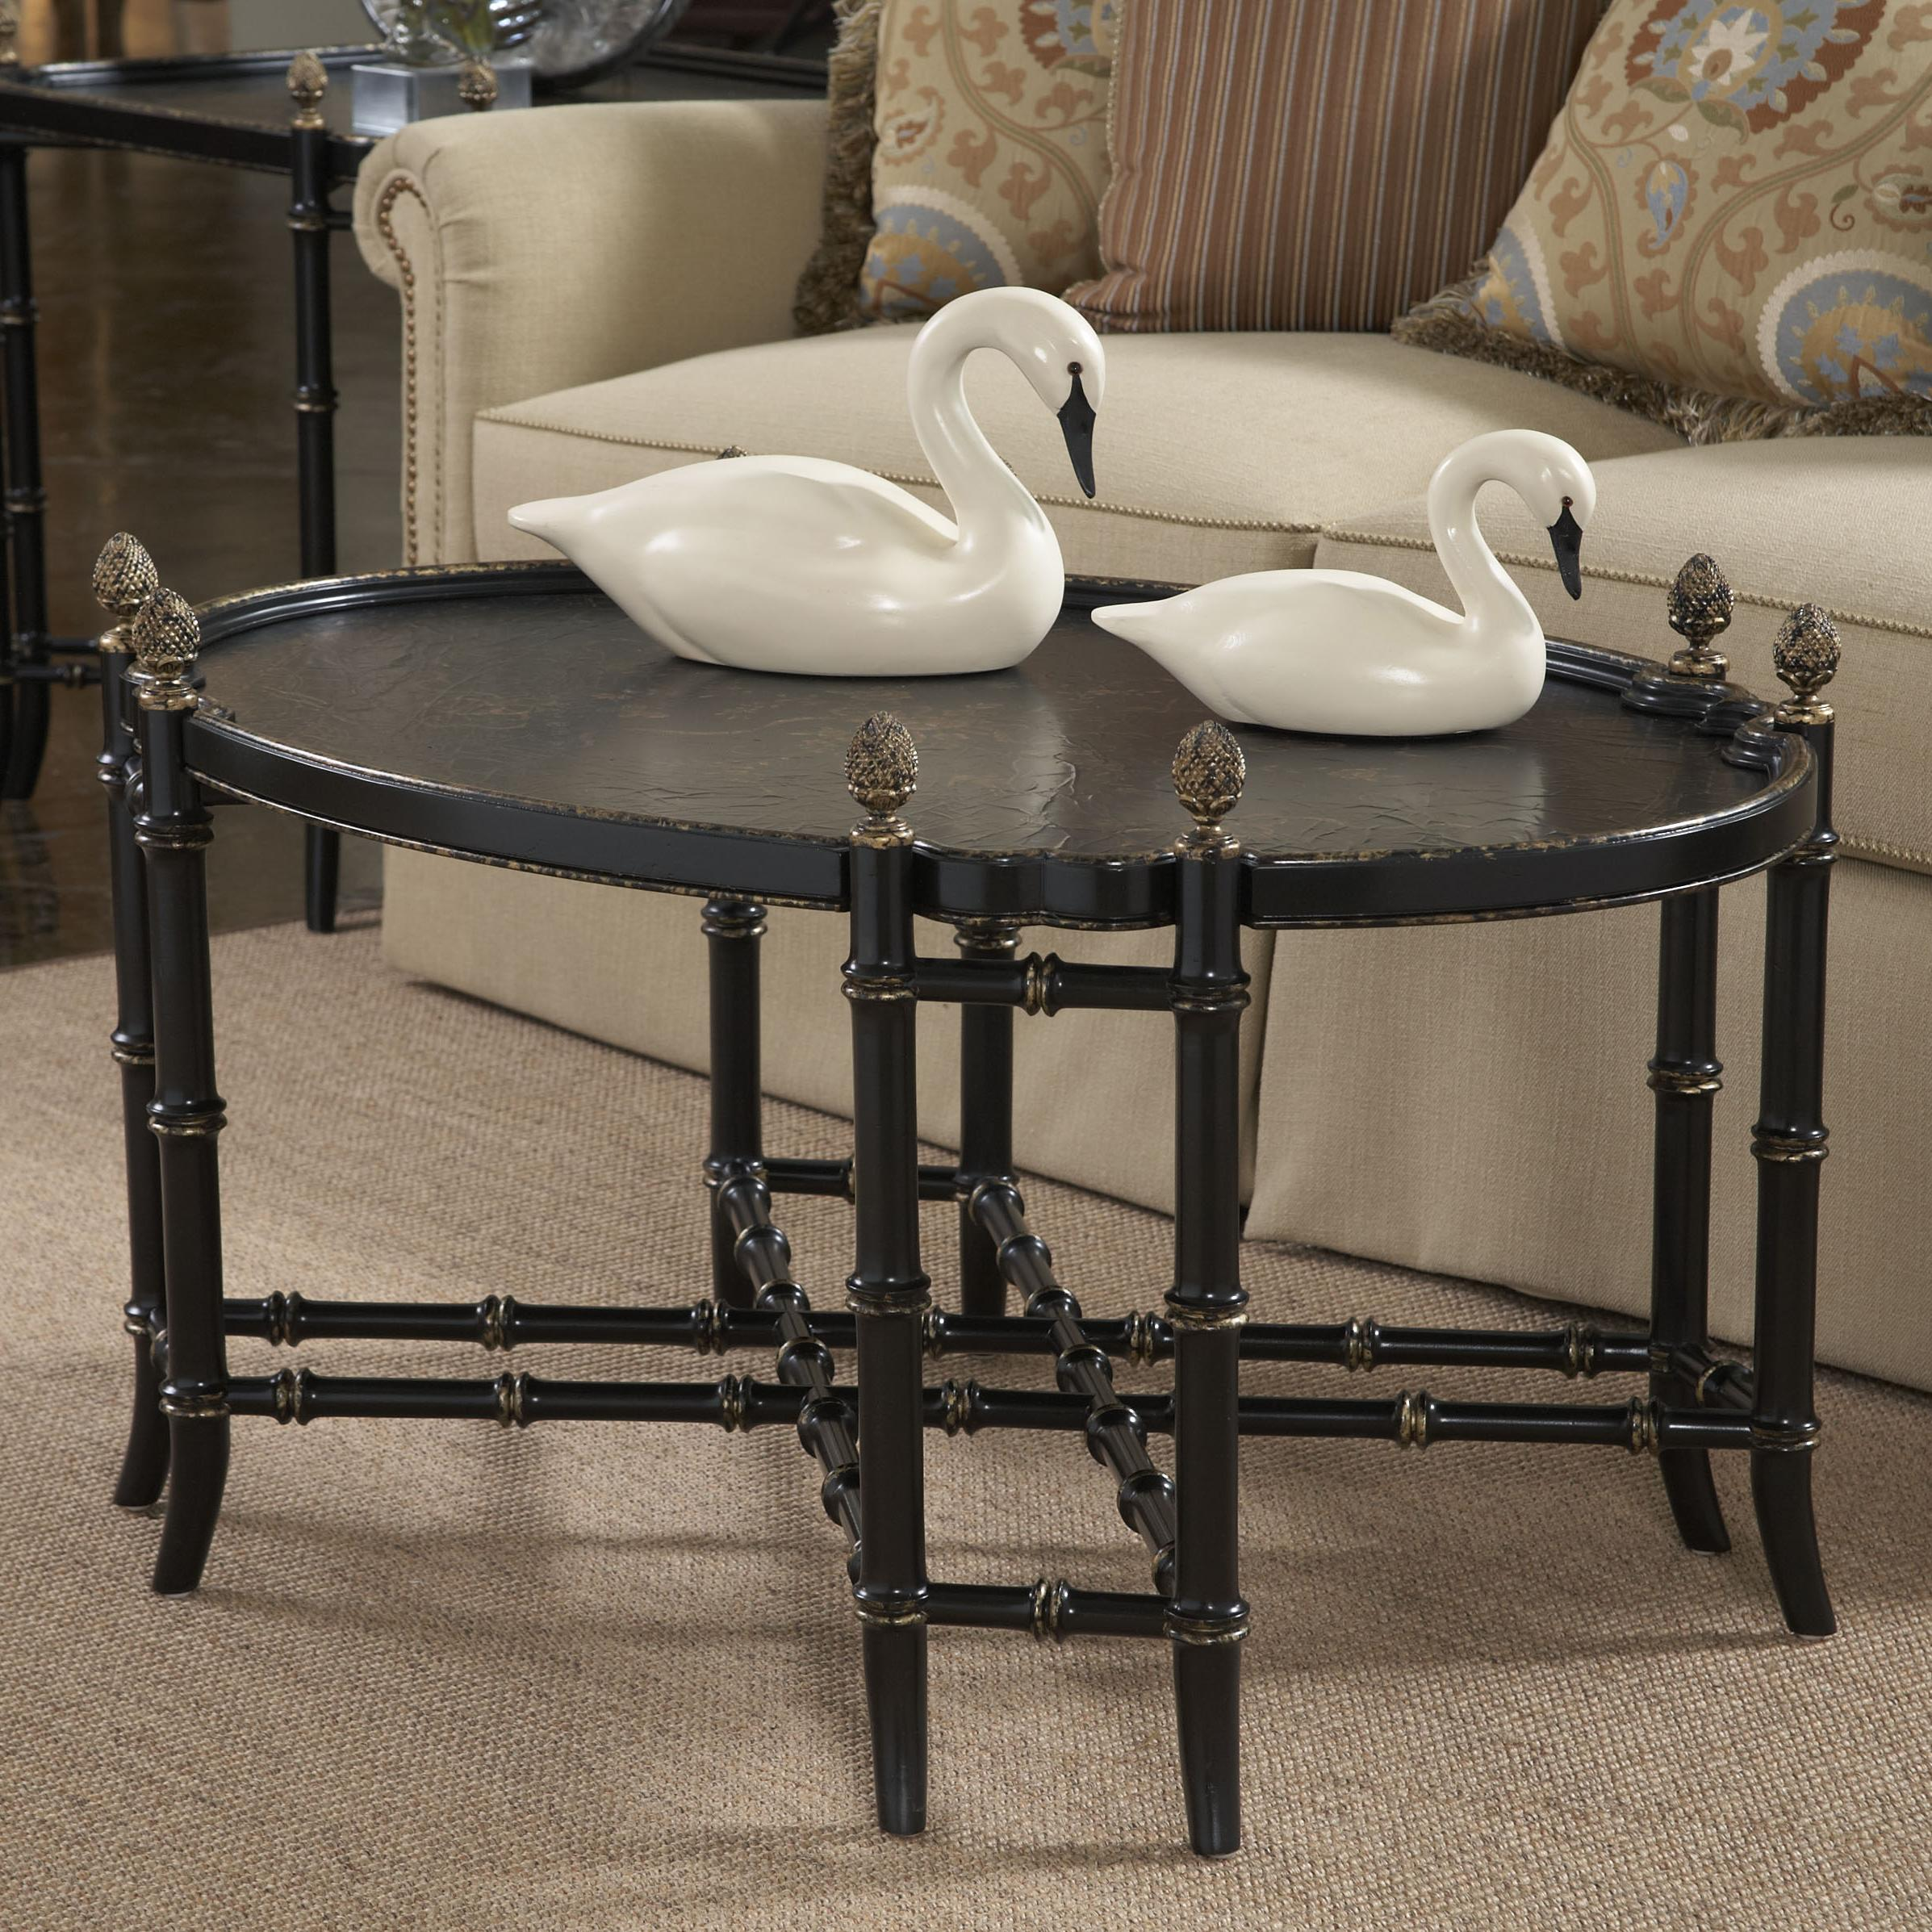 New London Chinoiserie Cocktail Table with Black and Gold